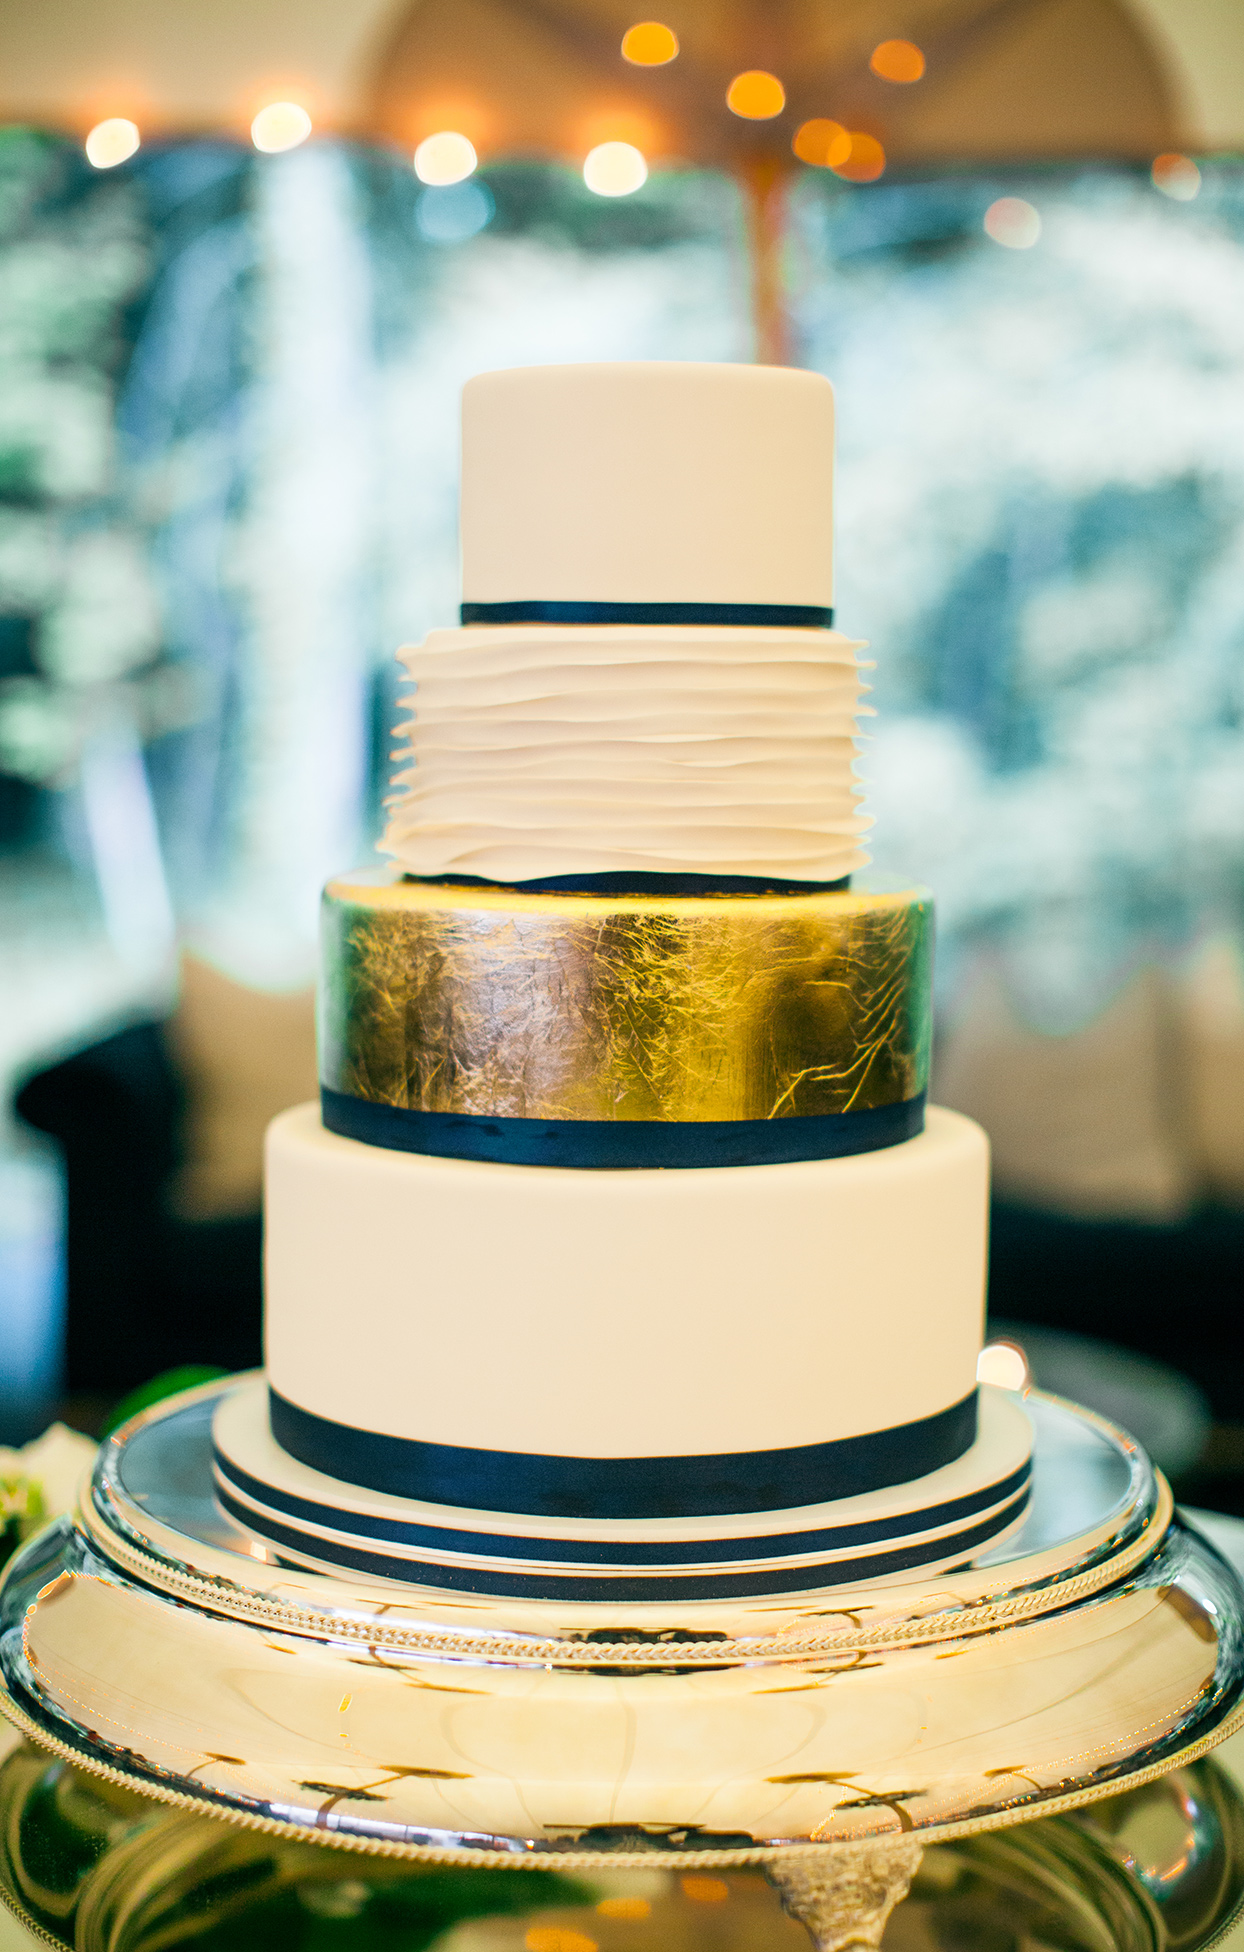 robert anthony wedding cake with golden accent layer